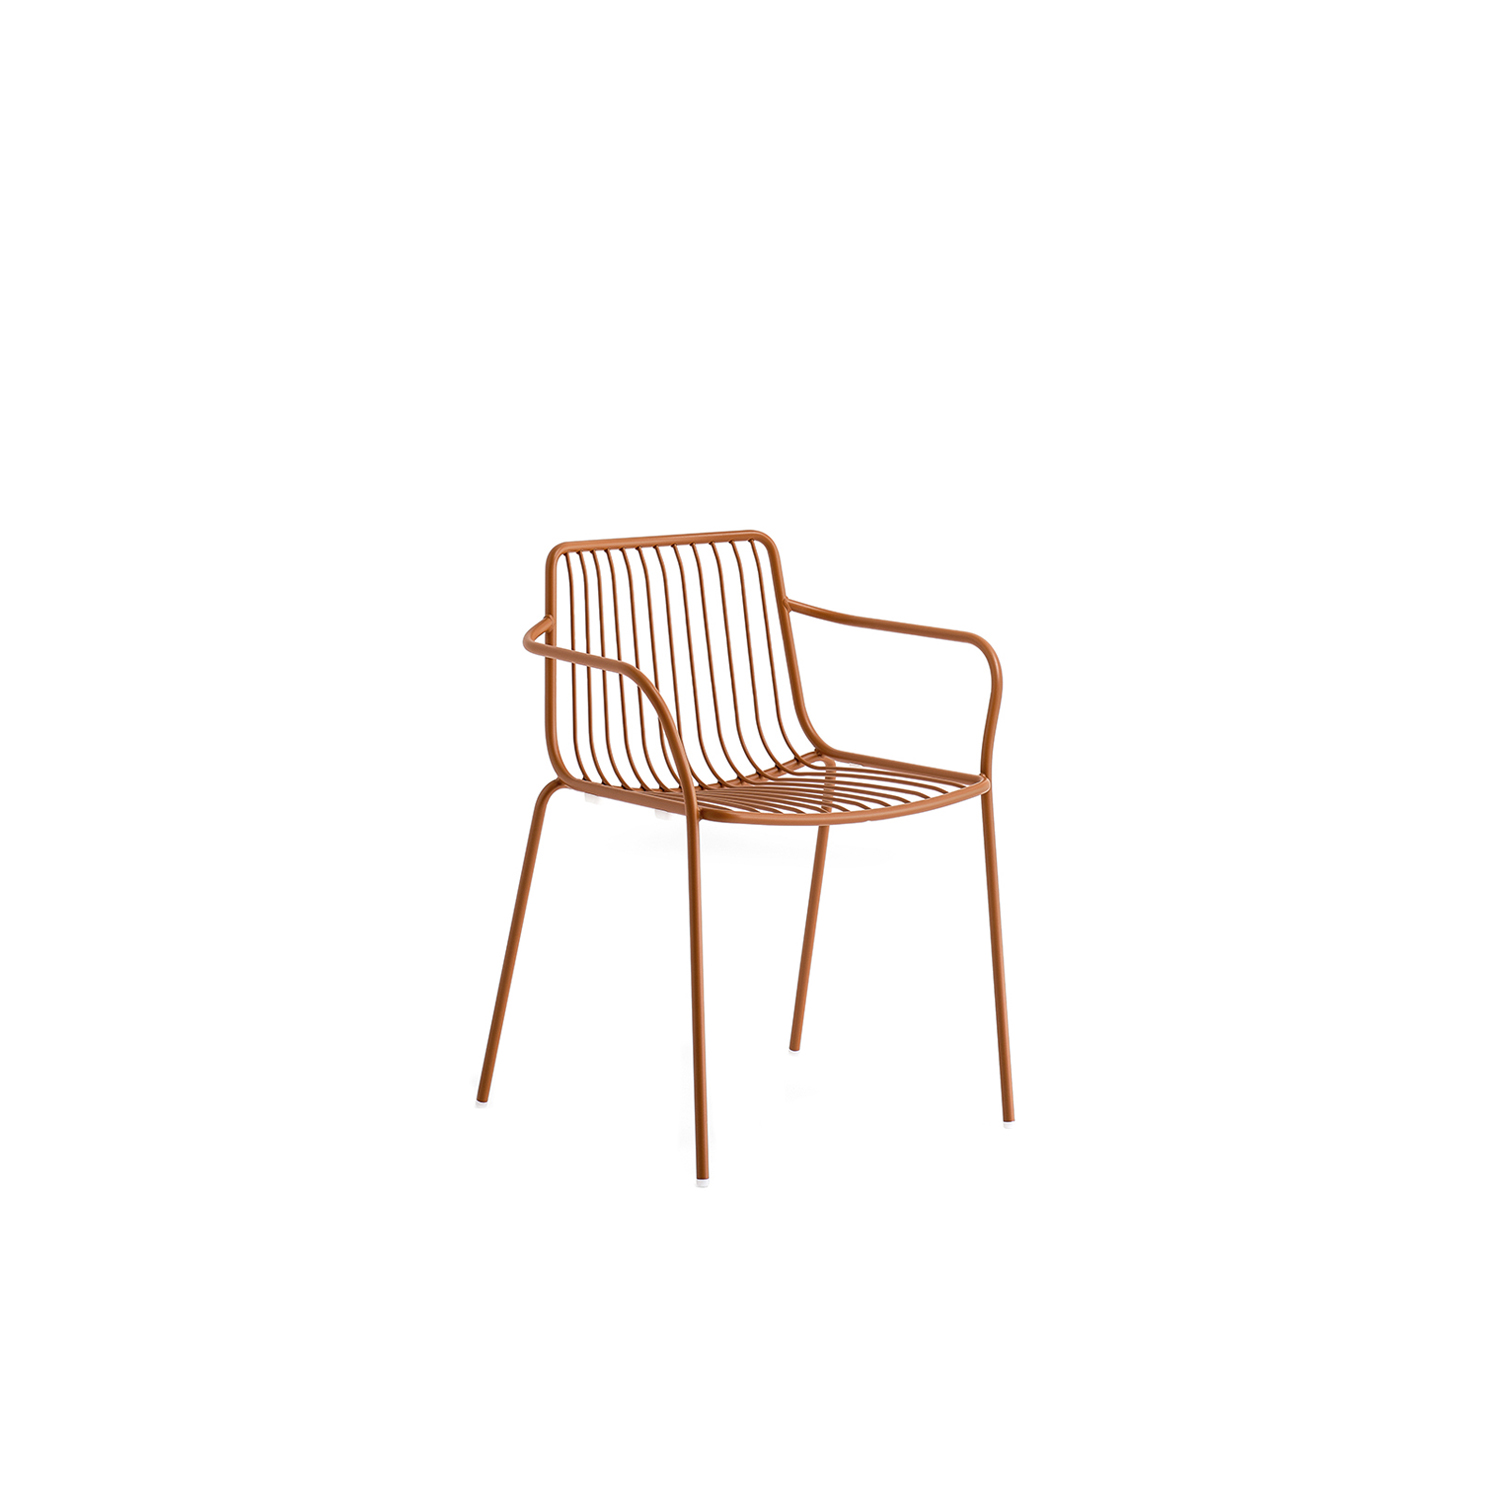 Nolita Armchair - Nolita is a family of outdoor seatings which recalls the origins of a historic course started by Mario Pedrali in 1963 with his first metal garden chairs. Armchair with high backrest, steel tube frame powder coated for outdoor use.